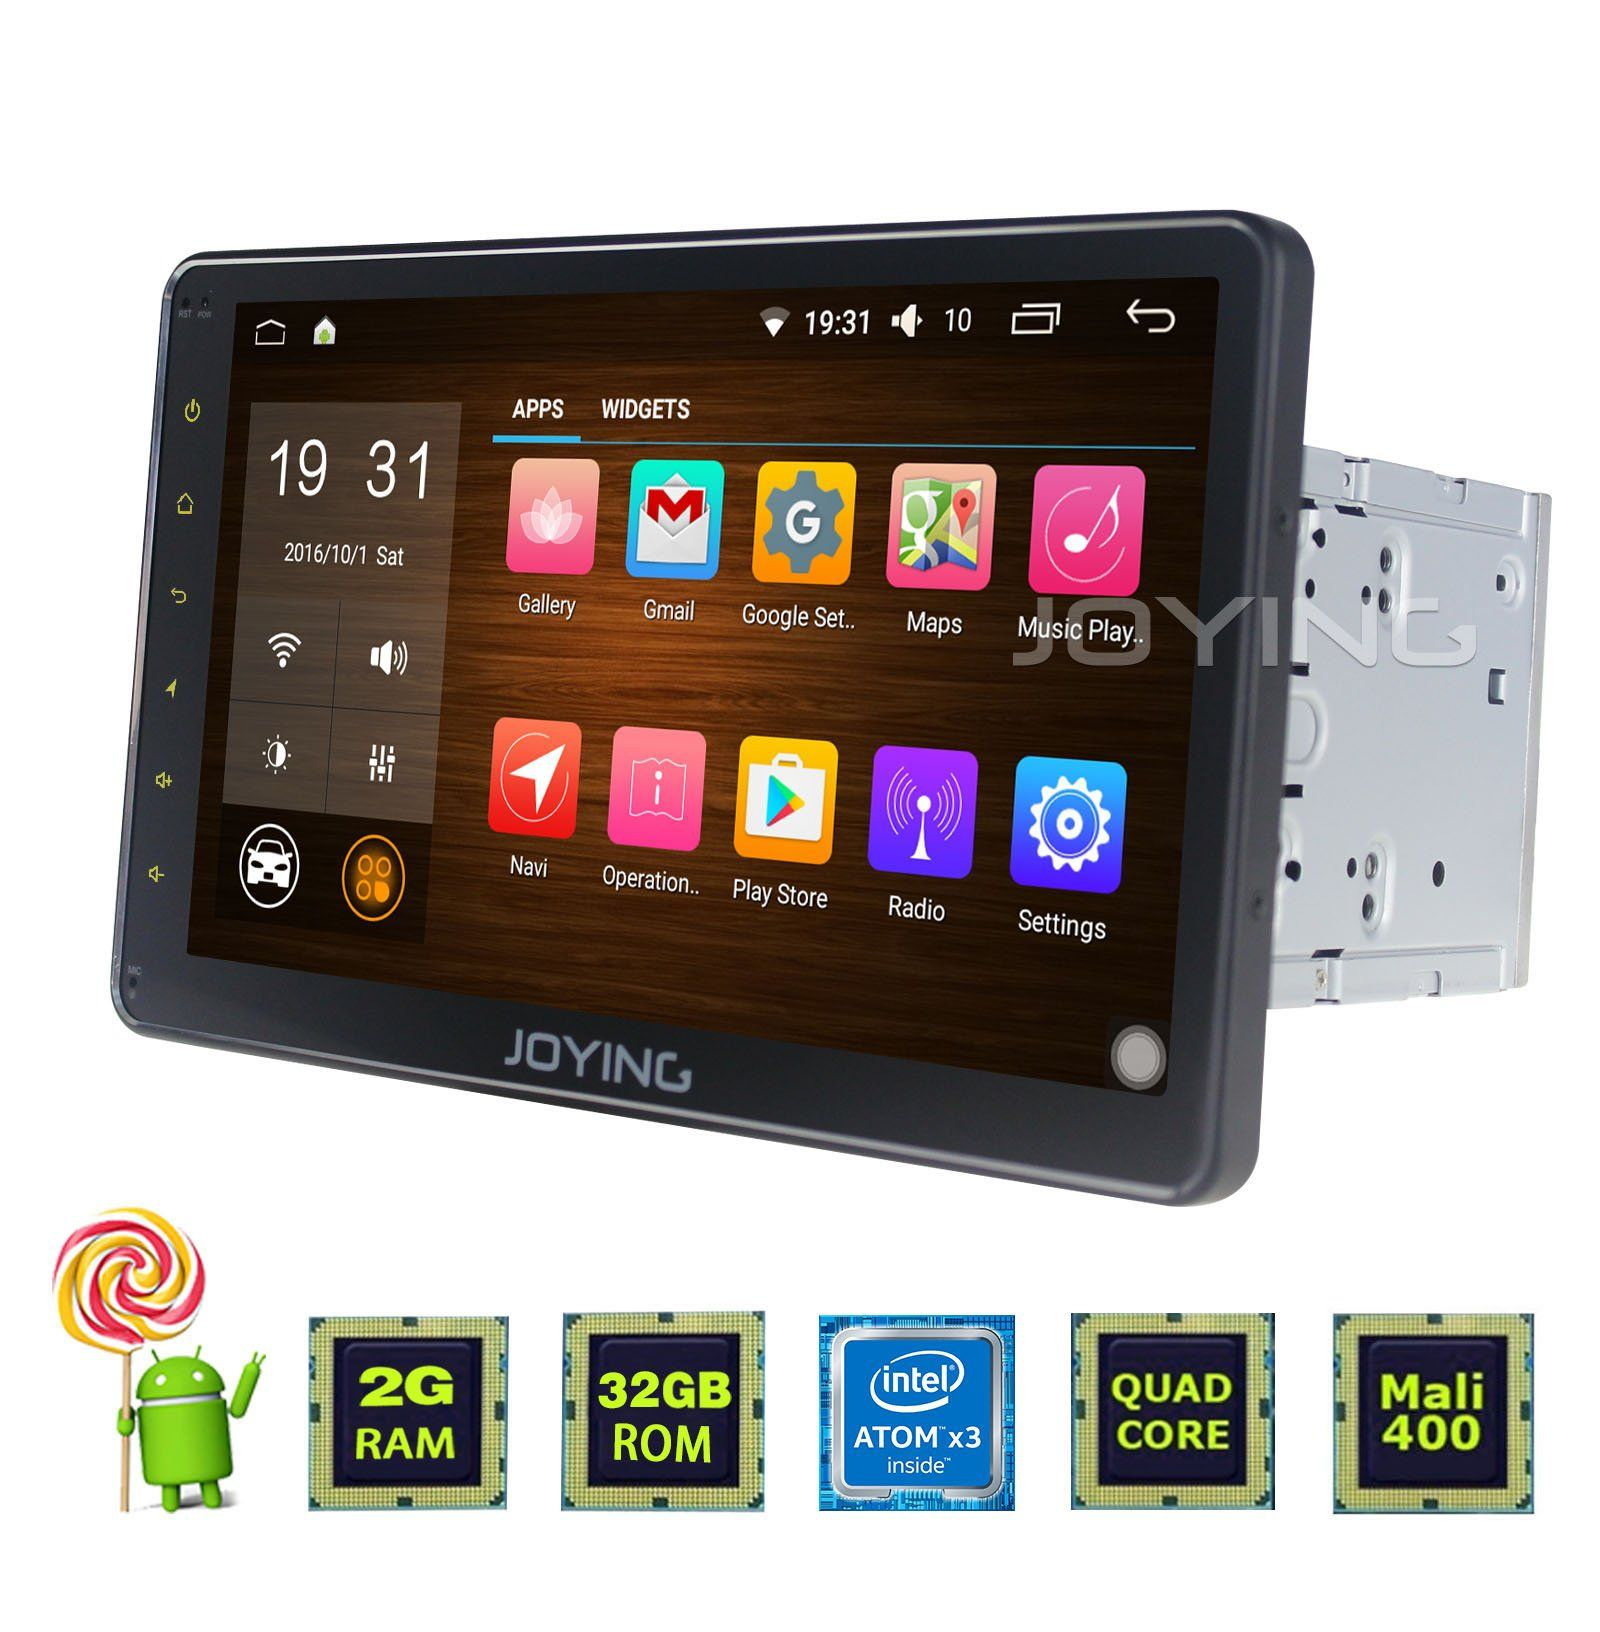 Joying 10 1 Inch Car Tablet Radio Pc Gps Head Unit Double Din Newest Android Car Stereo 2gb Ram Intel 5 1 L Android Car Stereo Car Stereo Gps Navigation System